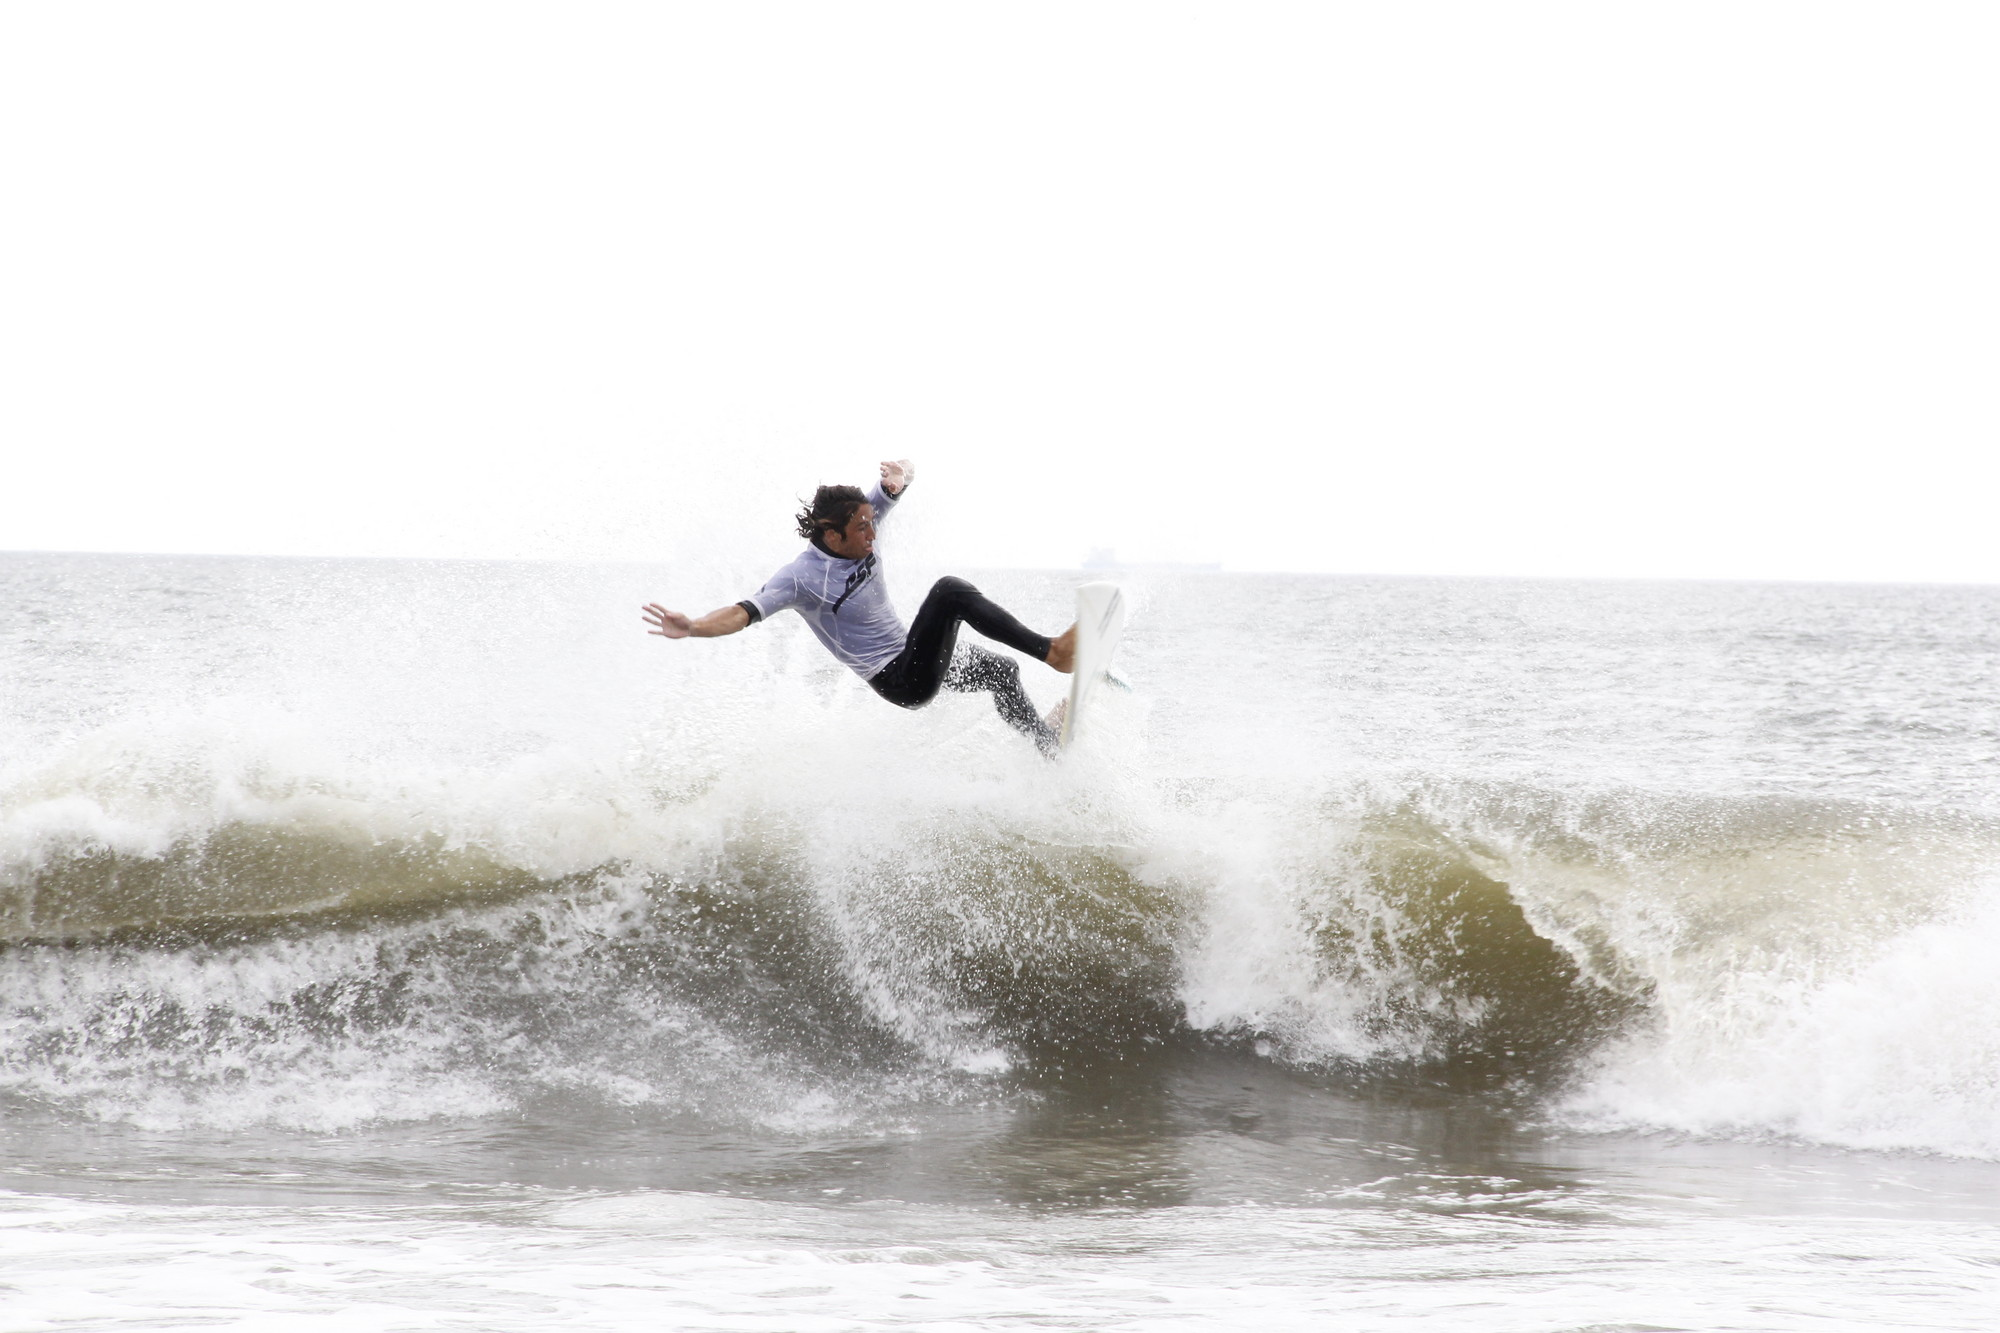 Pro surfer Rob Kelly took second place in the Unsound Surf Pro contest.